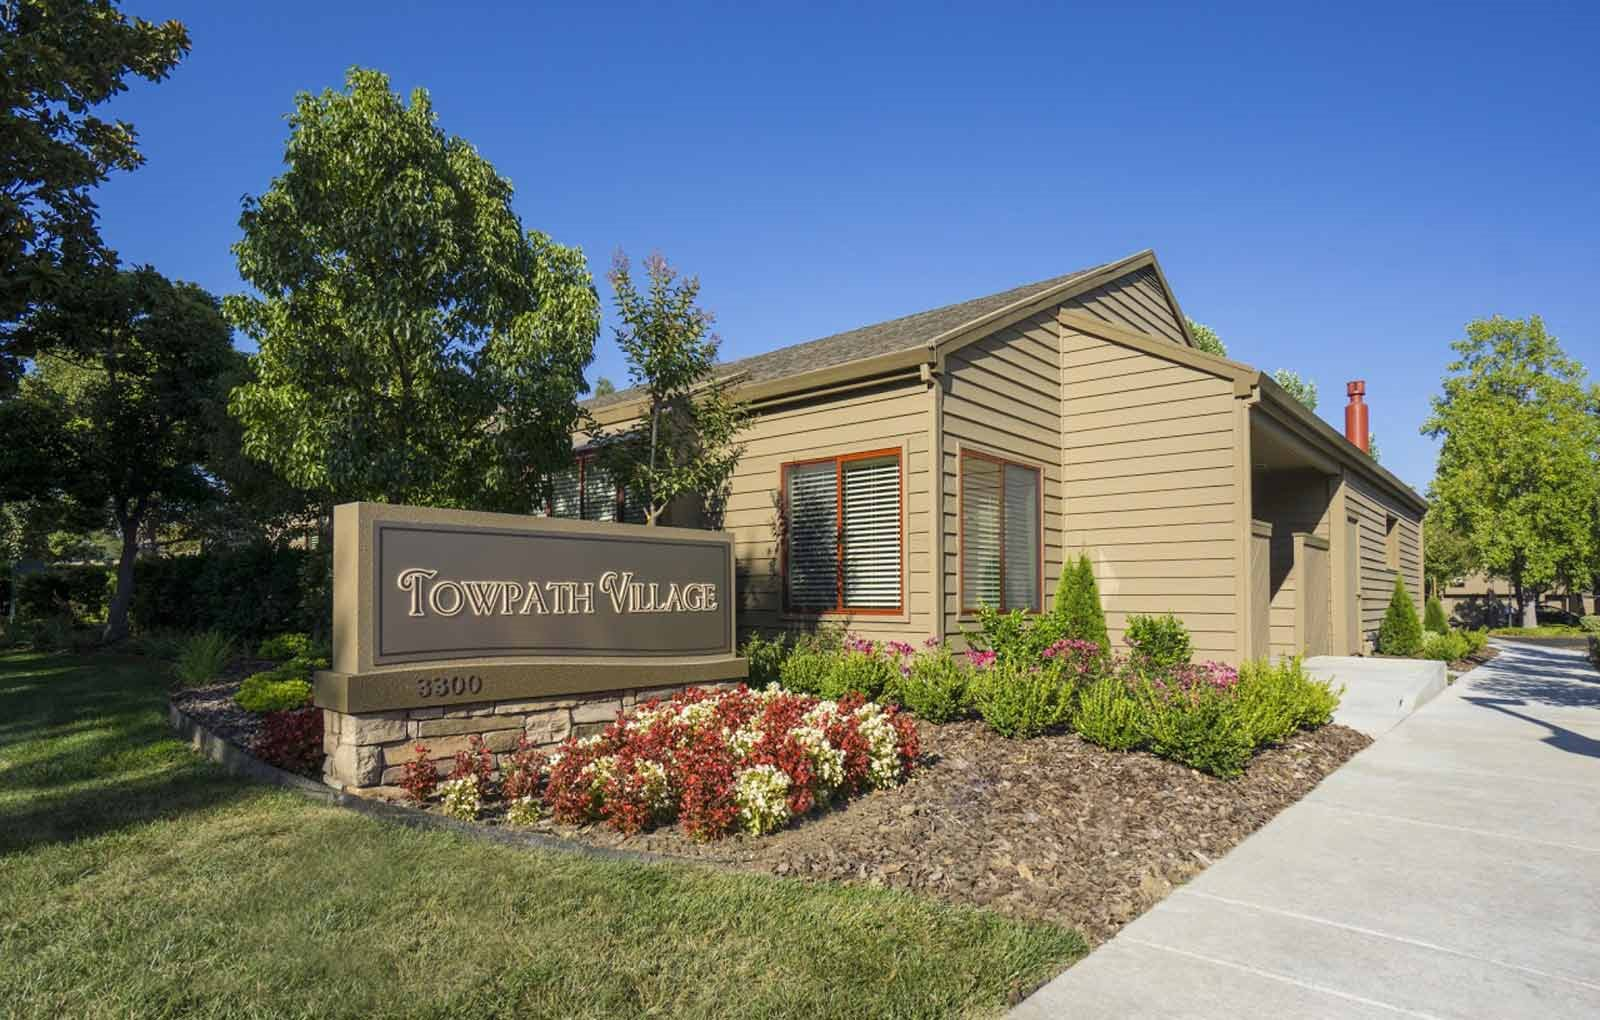 Apartments in Napa, Ca l Towpath Village